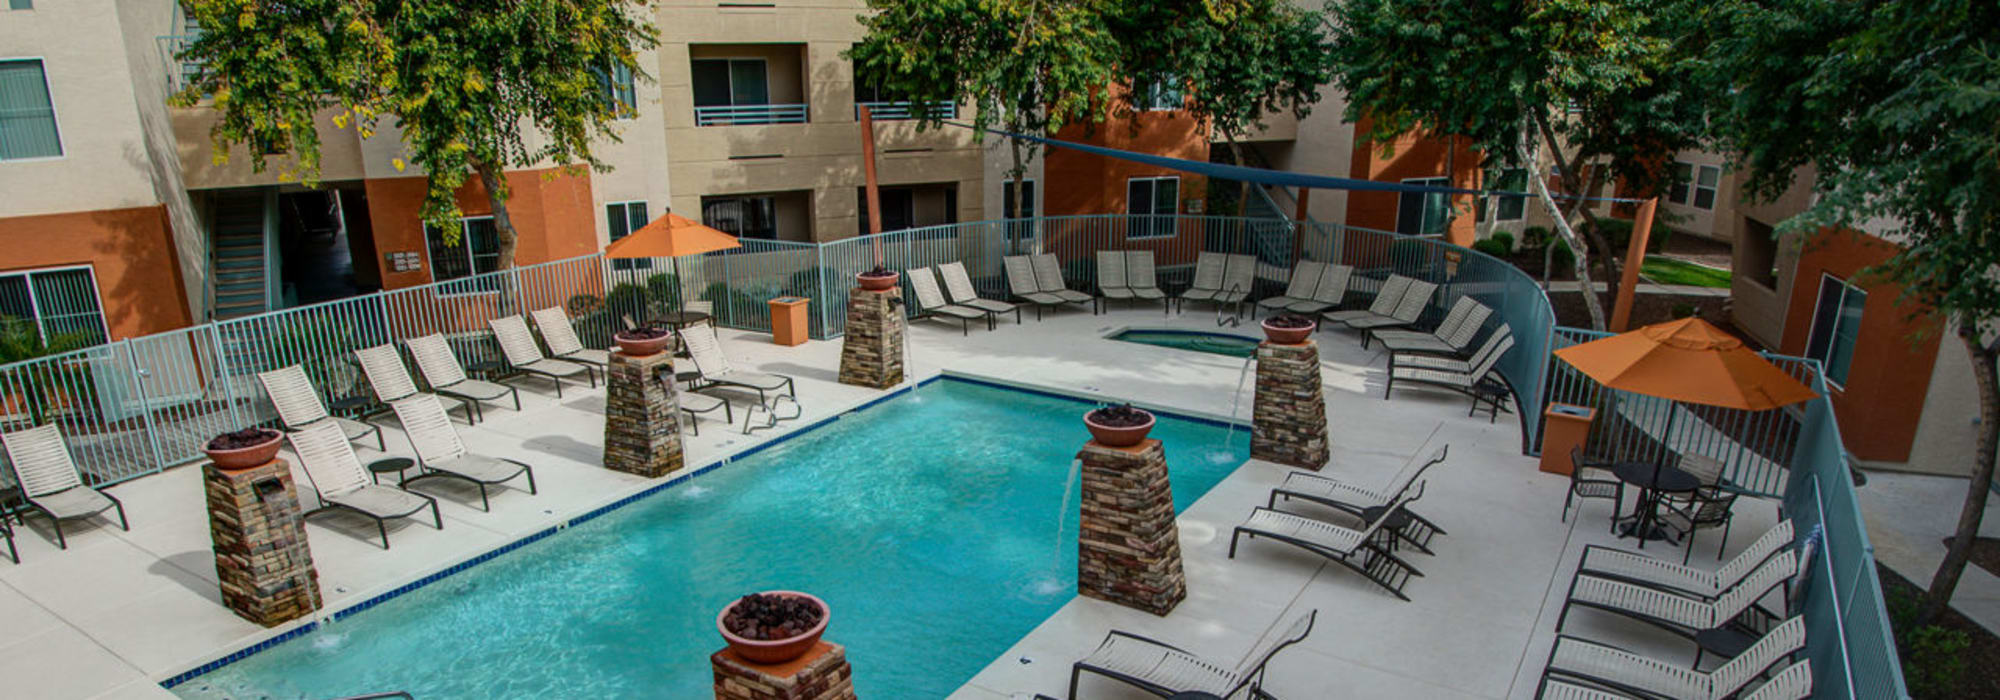 Sage Luxury Apartment Homes in Phoenix, Arizona